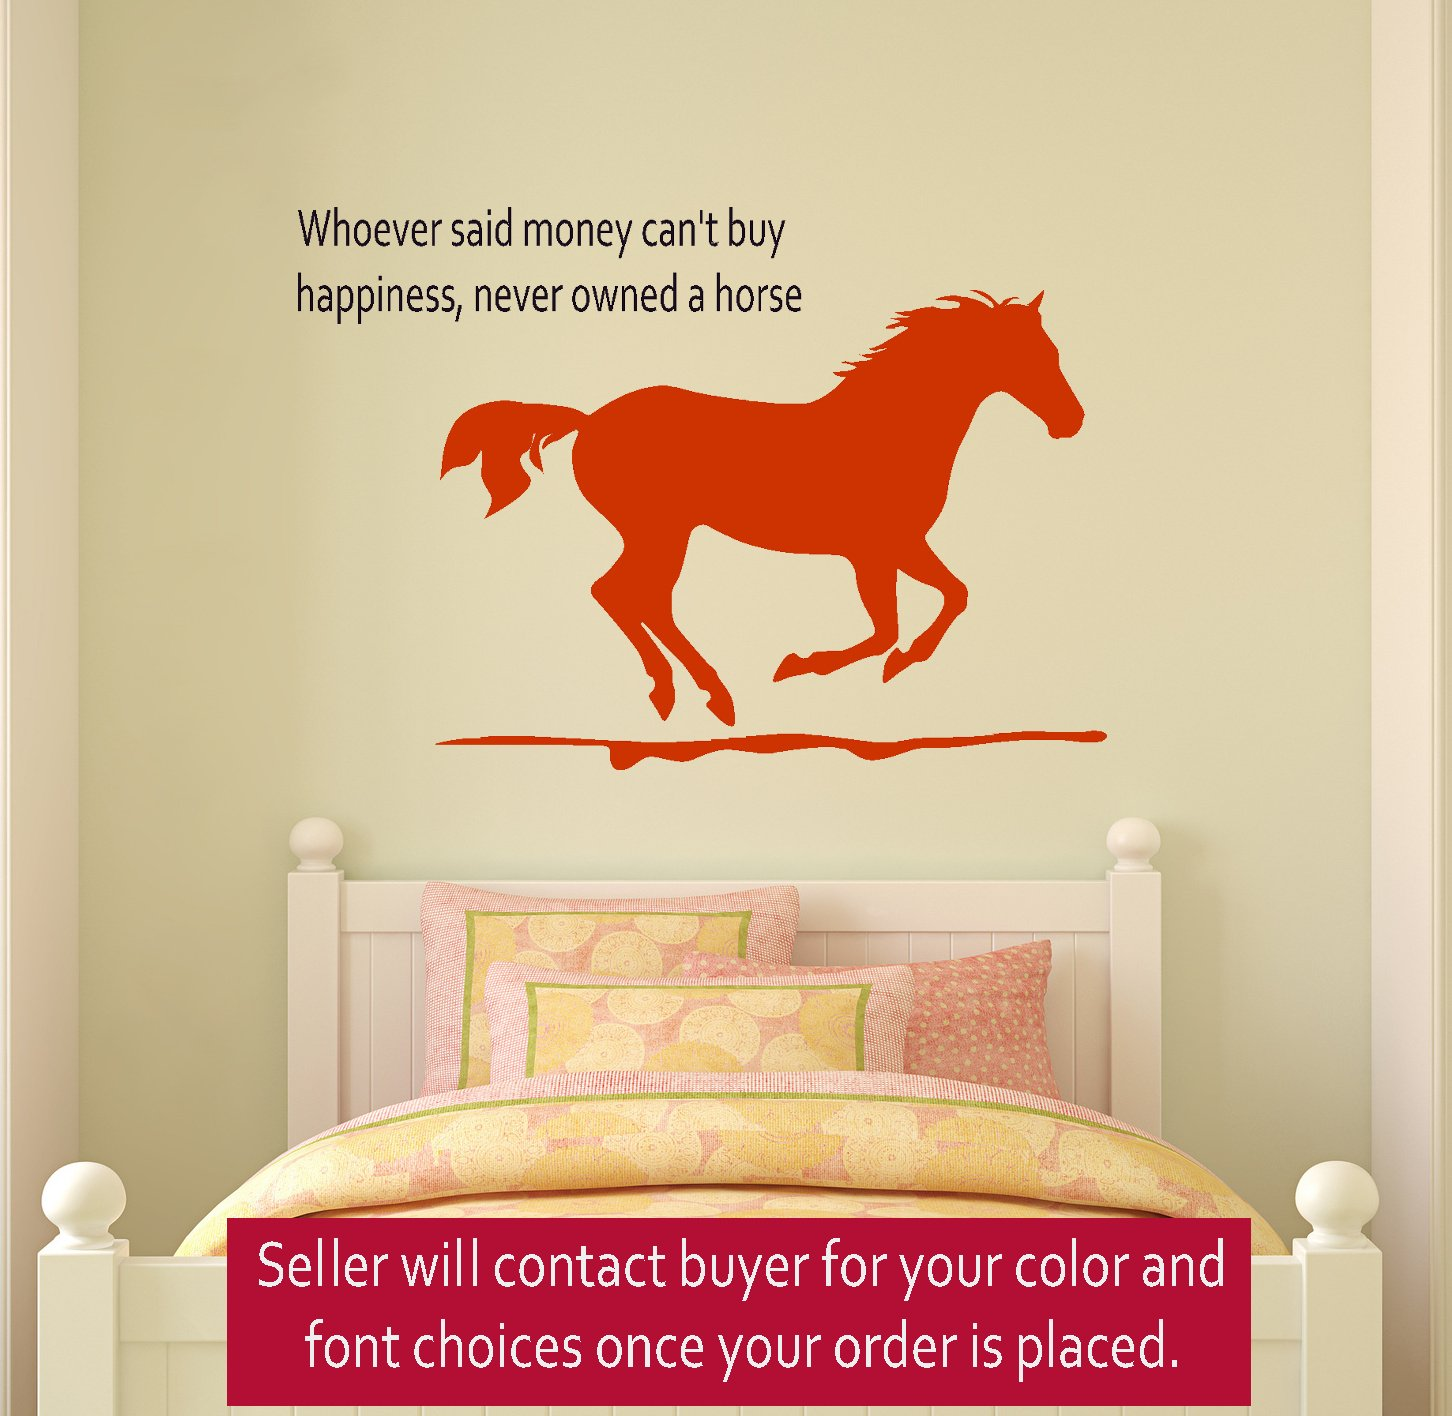 Merveilleux Horse Wall Decal, Girls Room Quote Decal, Wall Words Decal, Teen Bedroom  Decal, Dorm Room Decor, 23 X 33 Inches   Wall Decor Stickers   Amazon.com